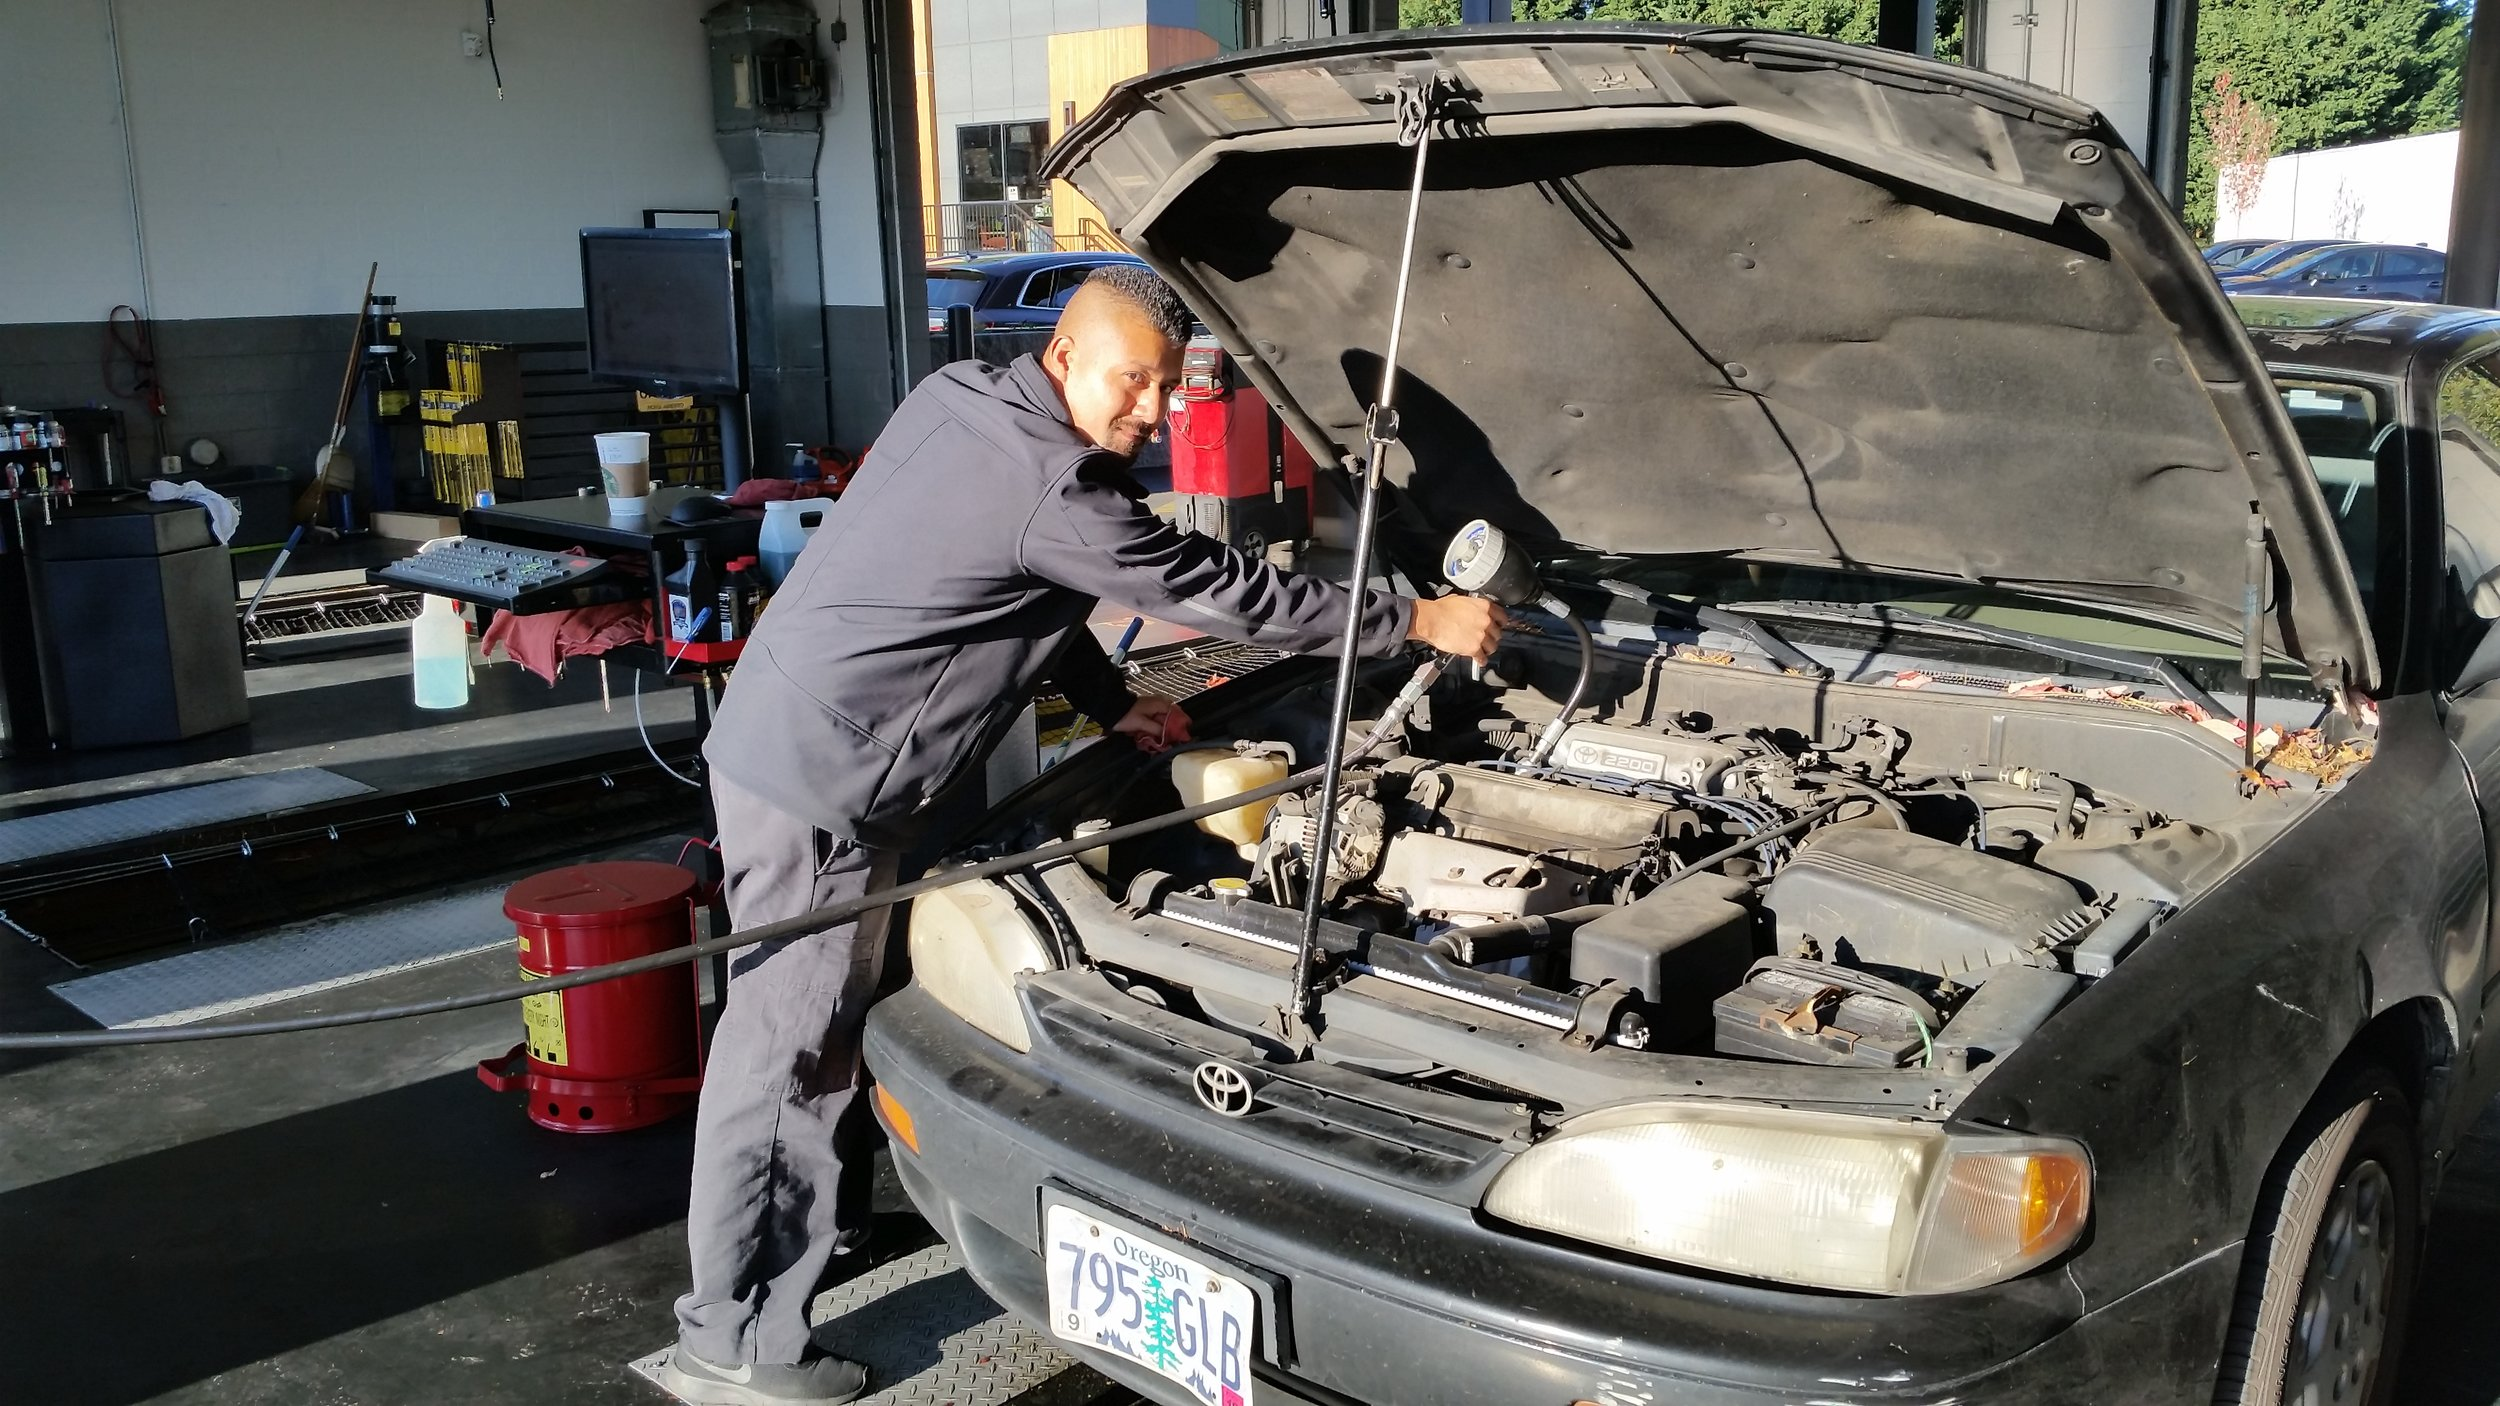 Fsat Lane Oil Change Tigard Mechanic.jpg